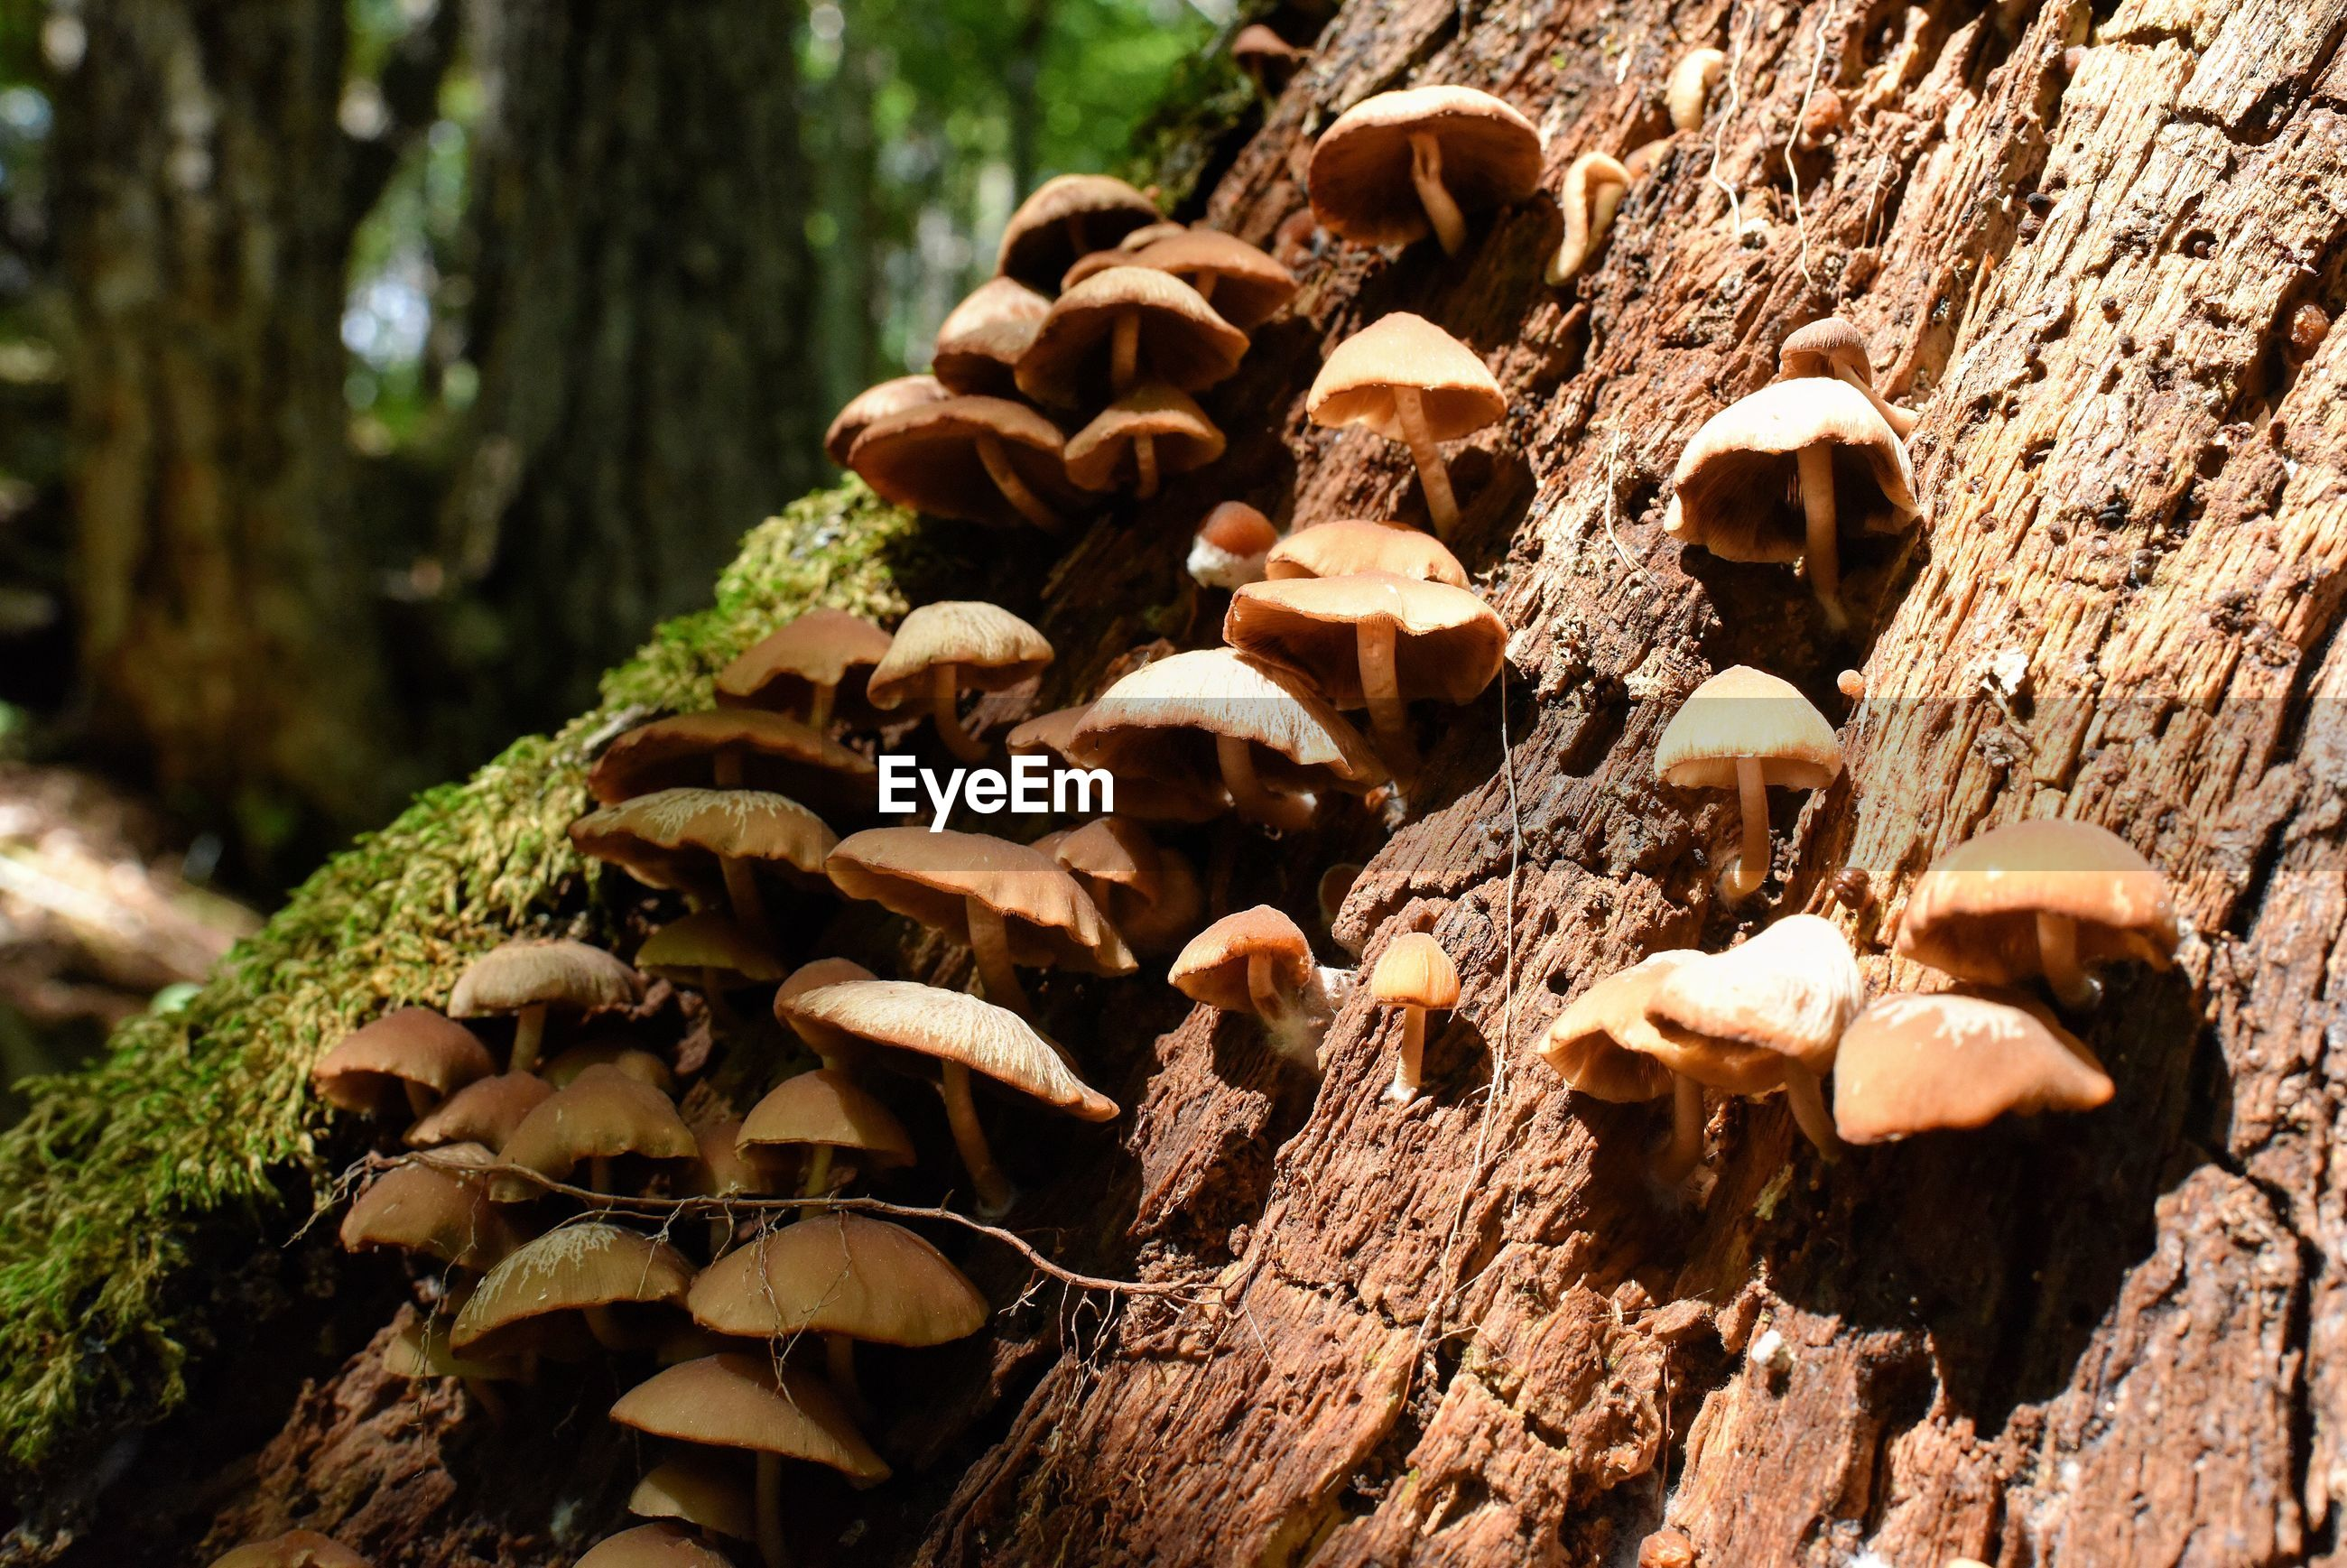 tree, mushroom, nature, fungus, no people, close-up, day, plant, tree trunk, growth, trunk, toadstool, land, food, forest, tranquility, selective focus, wood - material, beauty in nature, vegetable, outdoors, surface level, bark